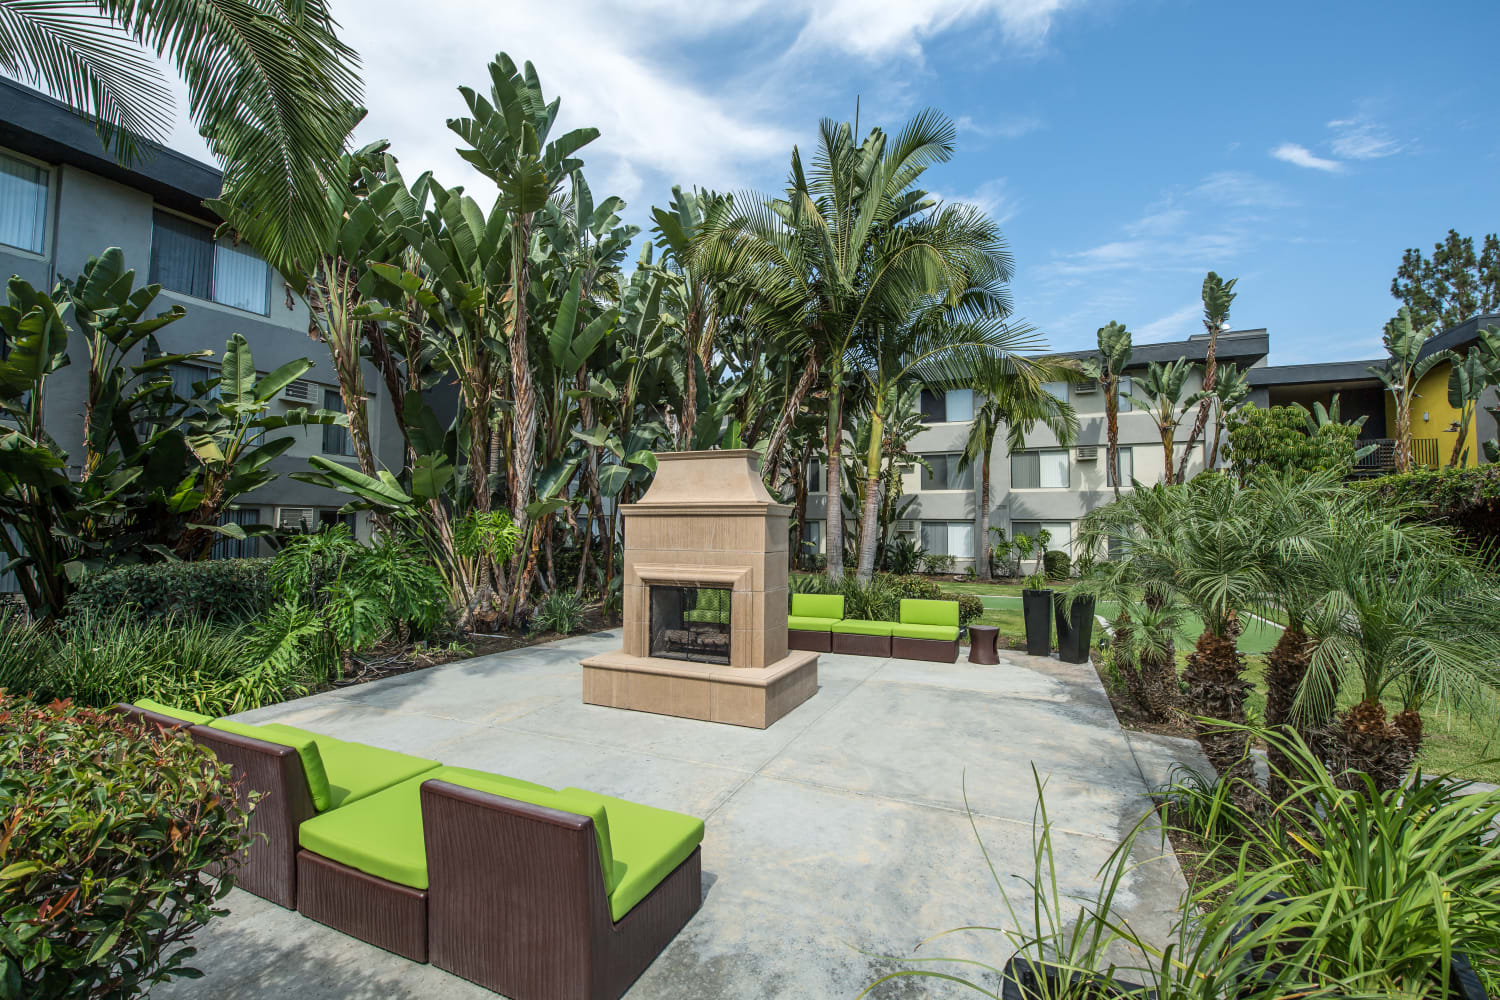 UCE Apartment Homes in Fullerton, California, offers outdoor seating near the fire pit